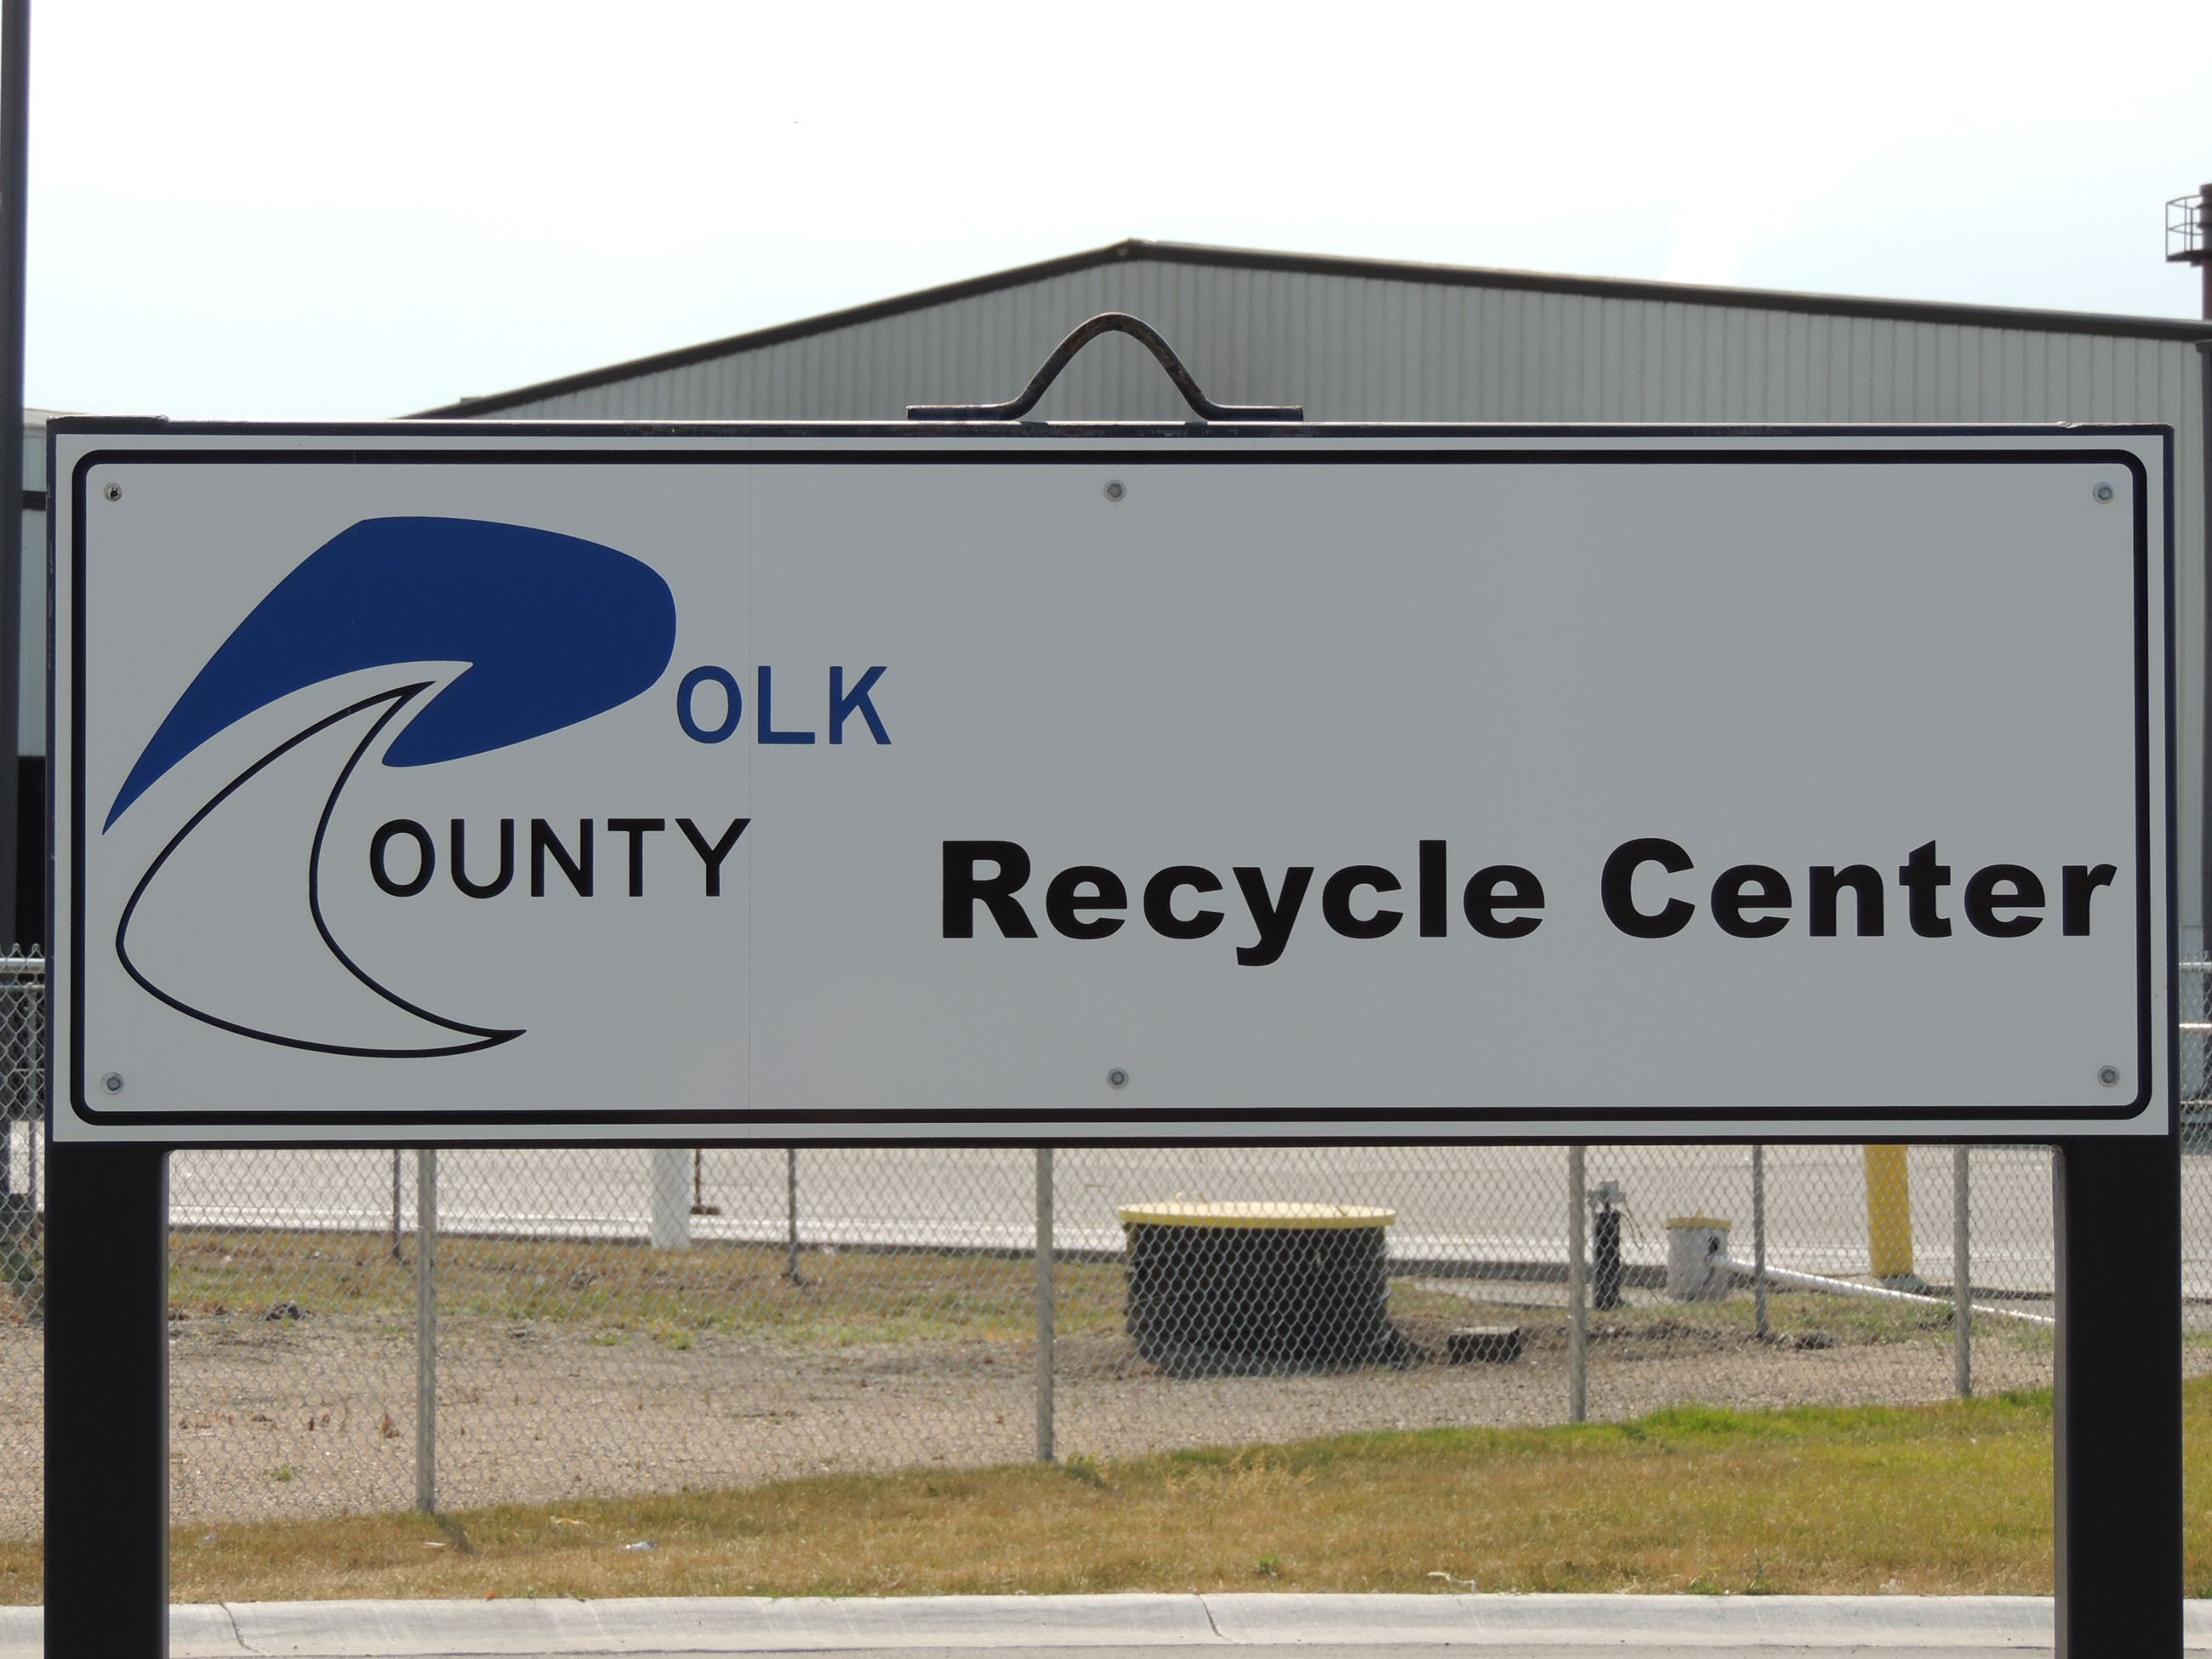 Polk County Recycle Center Sign